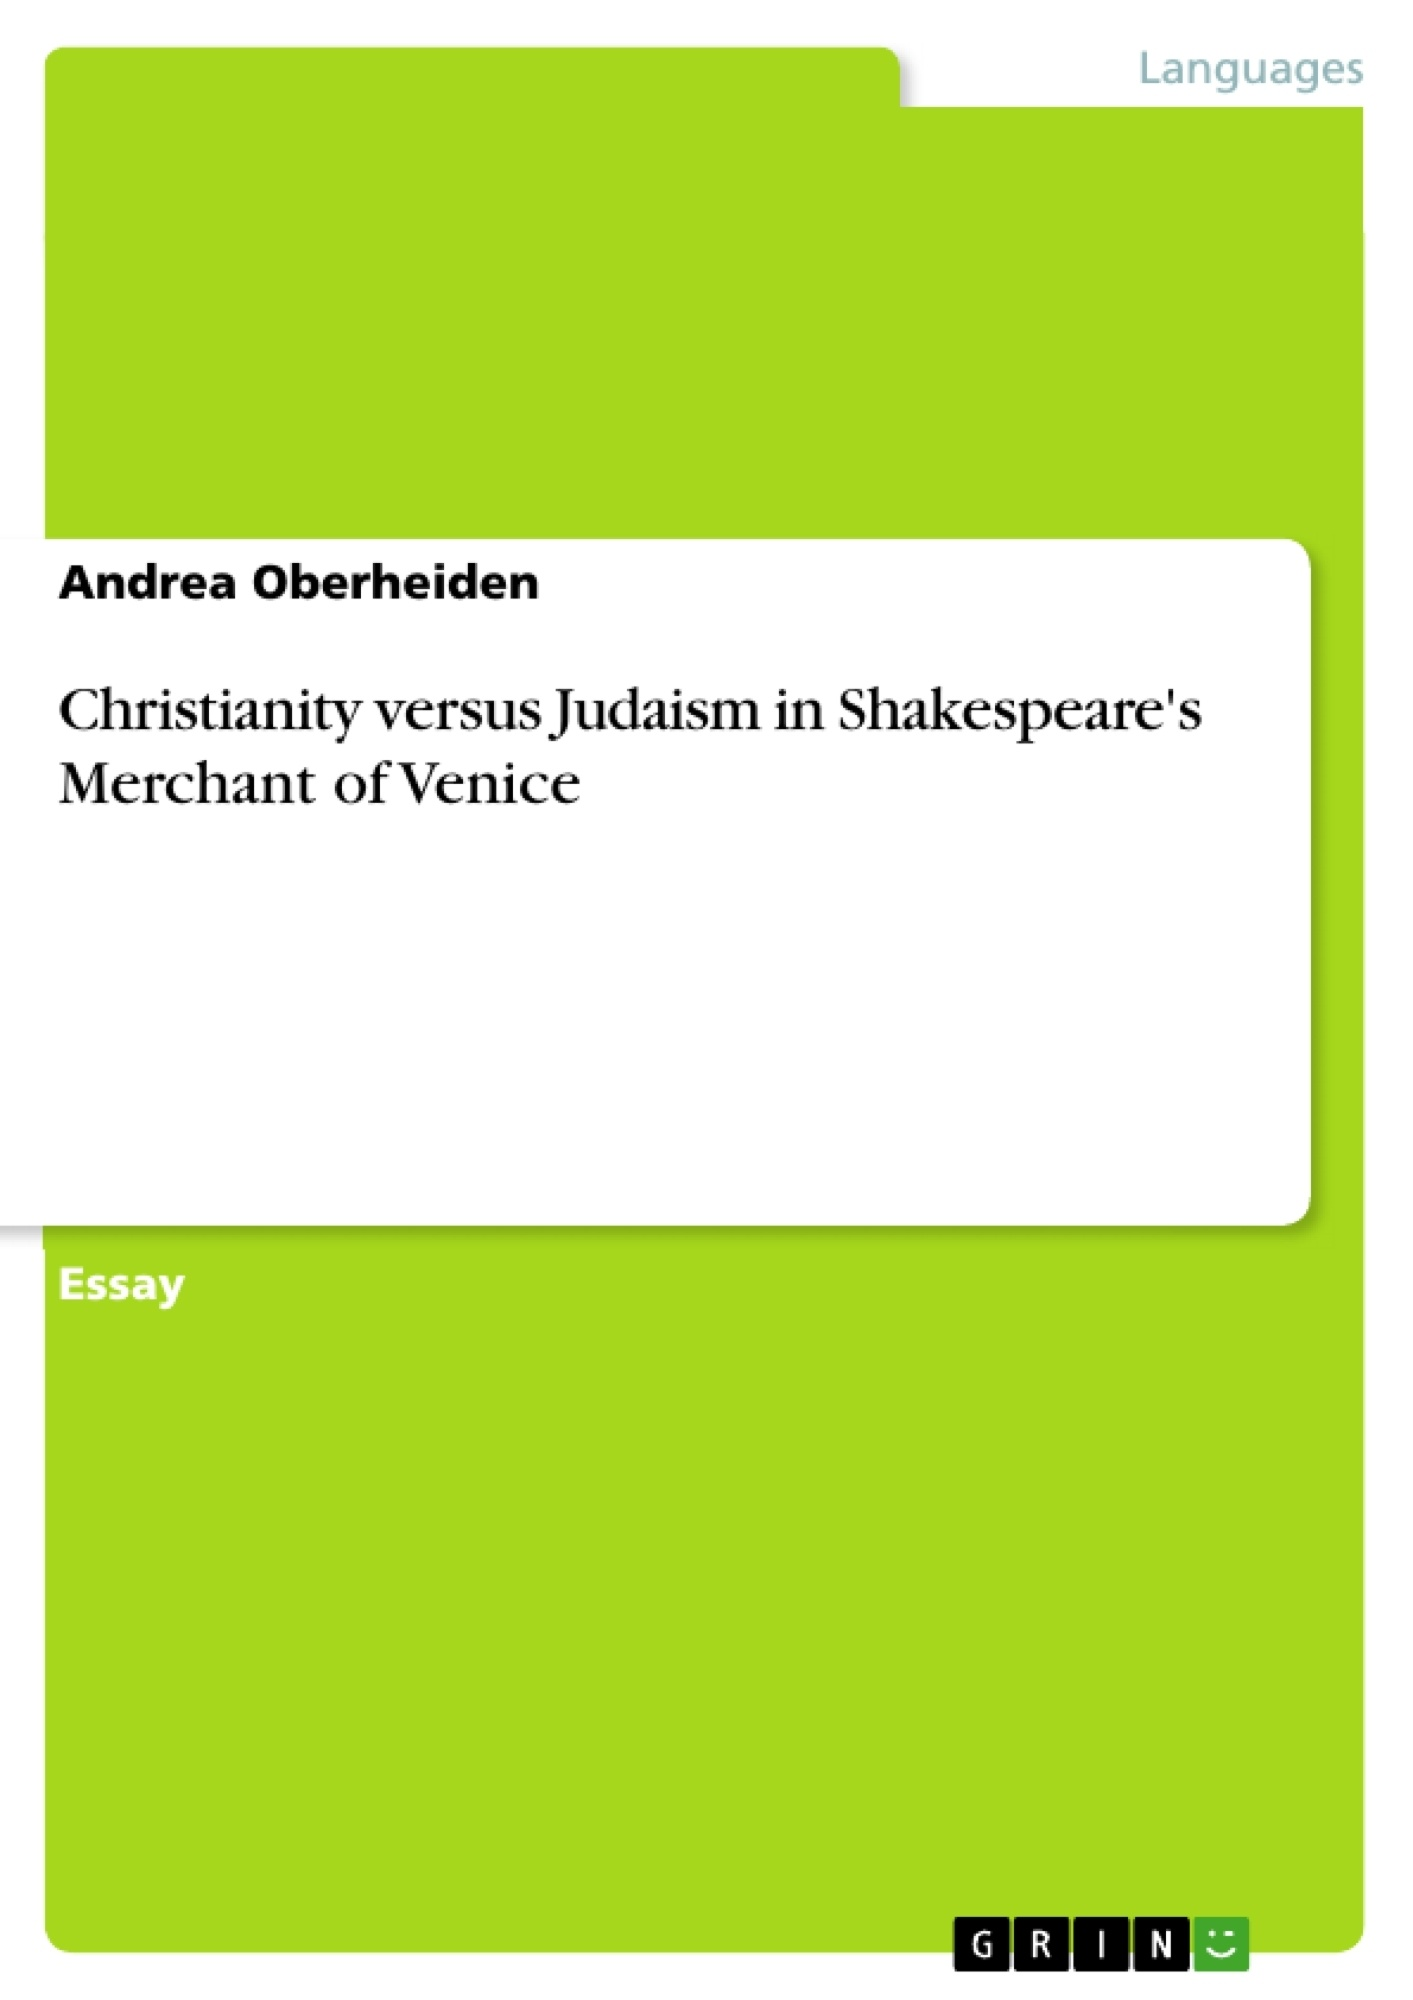 merchant of venice shylock essay best images about shakespeare the  christianity versus judaism in shakespeare s merchant of venice christianity versus judaism in shakespeare s merchant